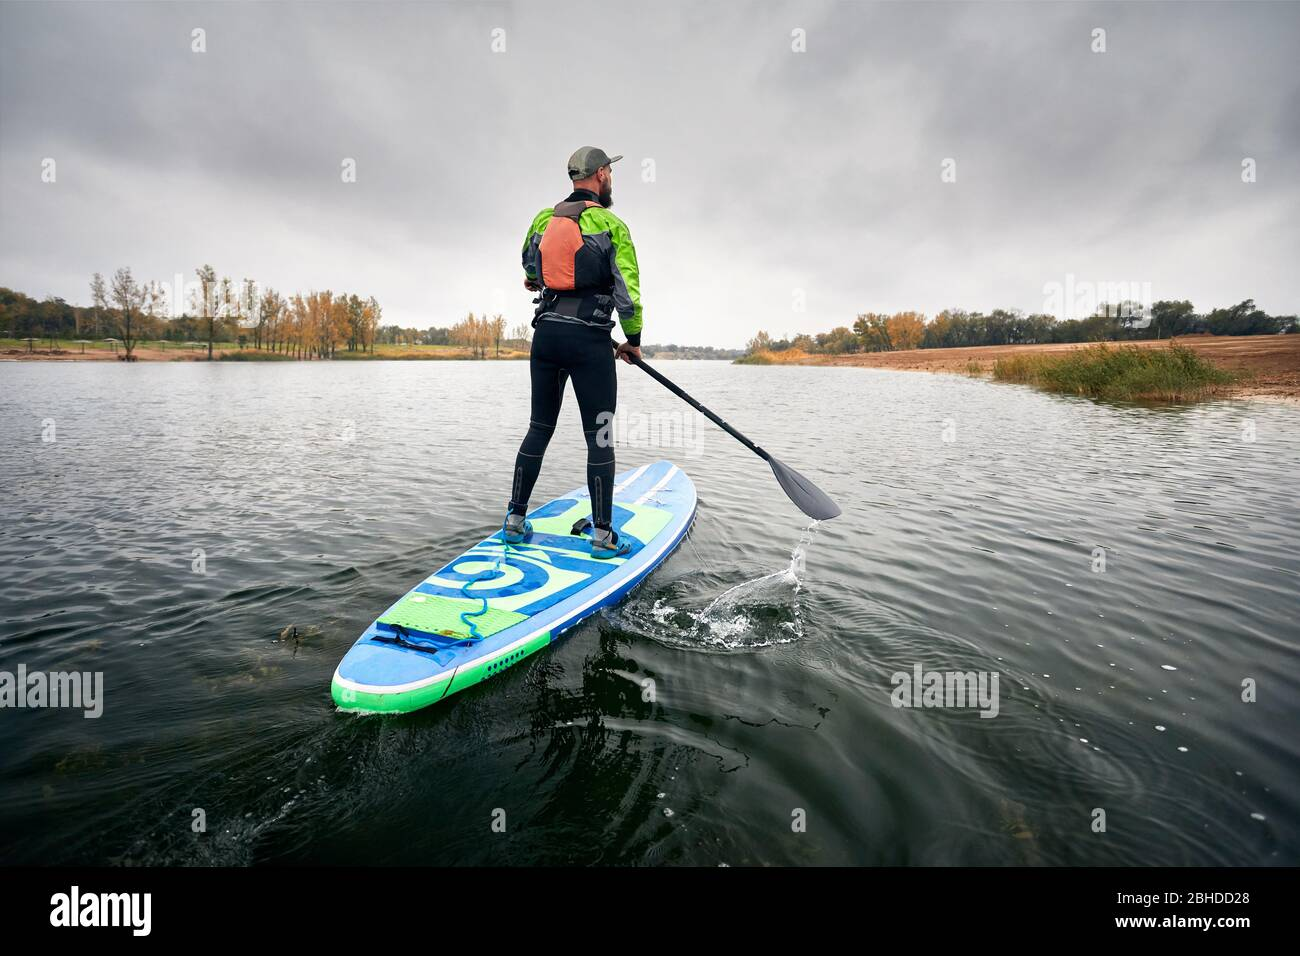 Athlete in wetsuit on paddleboard exploring the lake at cold weather against overcast sky Stock Photo